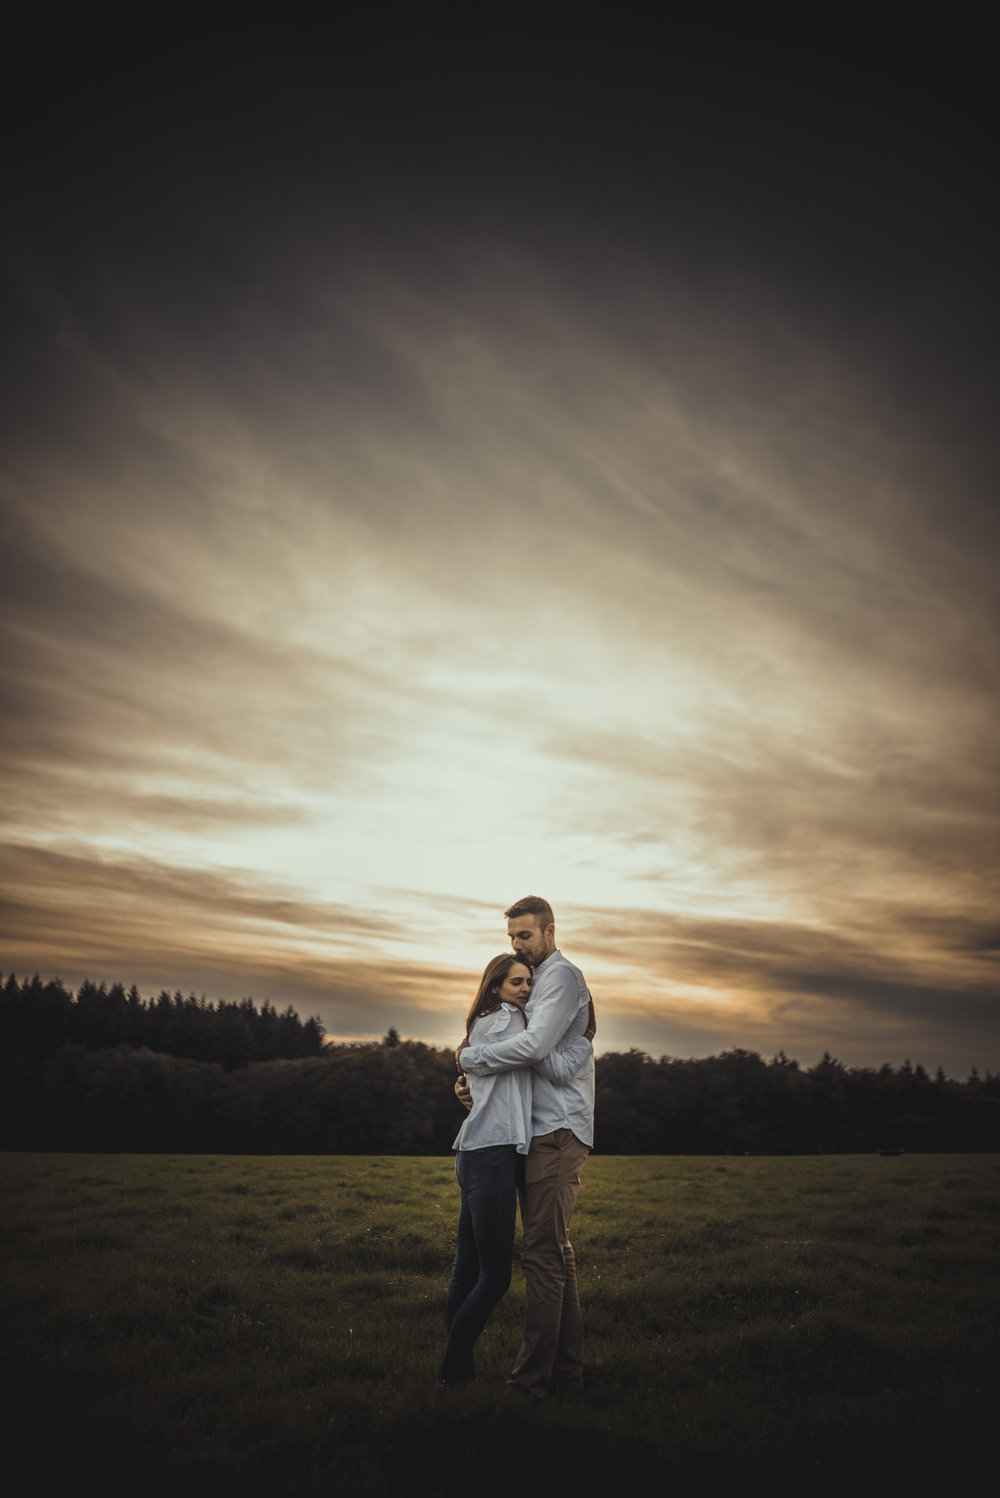 Emma-and-Jon-engagement-session-Fair-Oak-Manu-Mendoza-Wedding-Photography-066.jpg